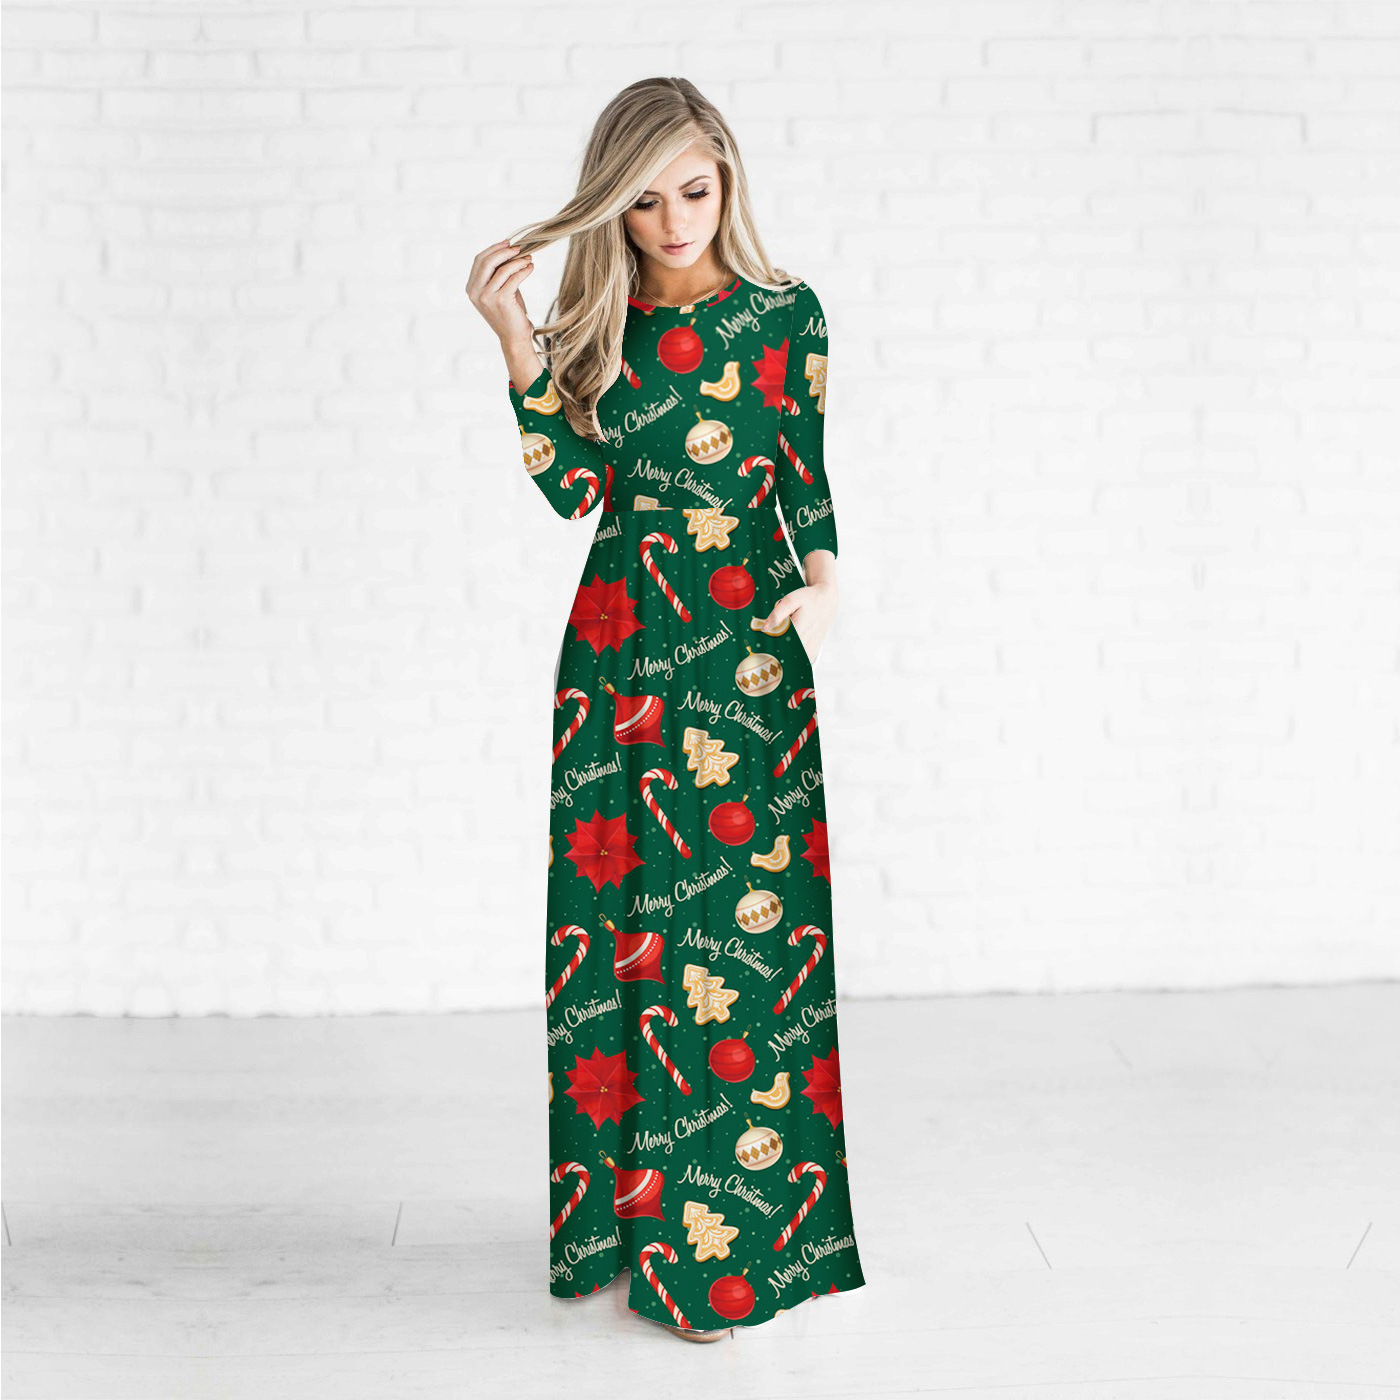 Fashion Design Clothes 2017 Novelty 3D Christmas Gift Green Dress Wrist Sleeve O neck Sexy Pleated Women Dress Vintage Dresses